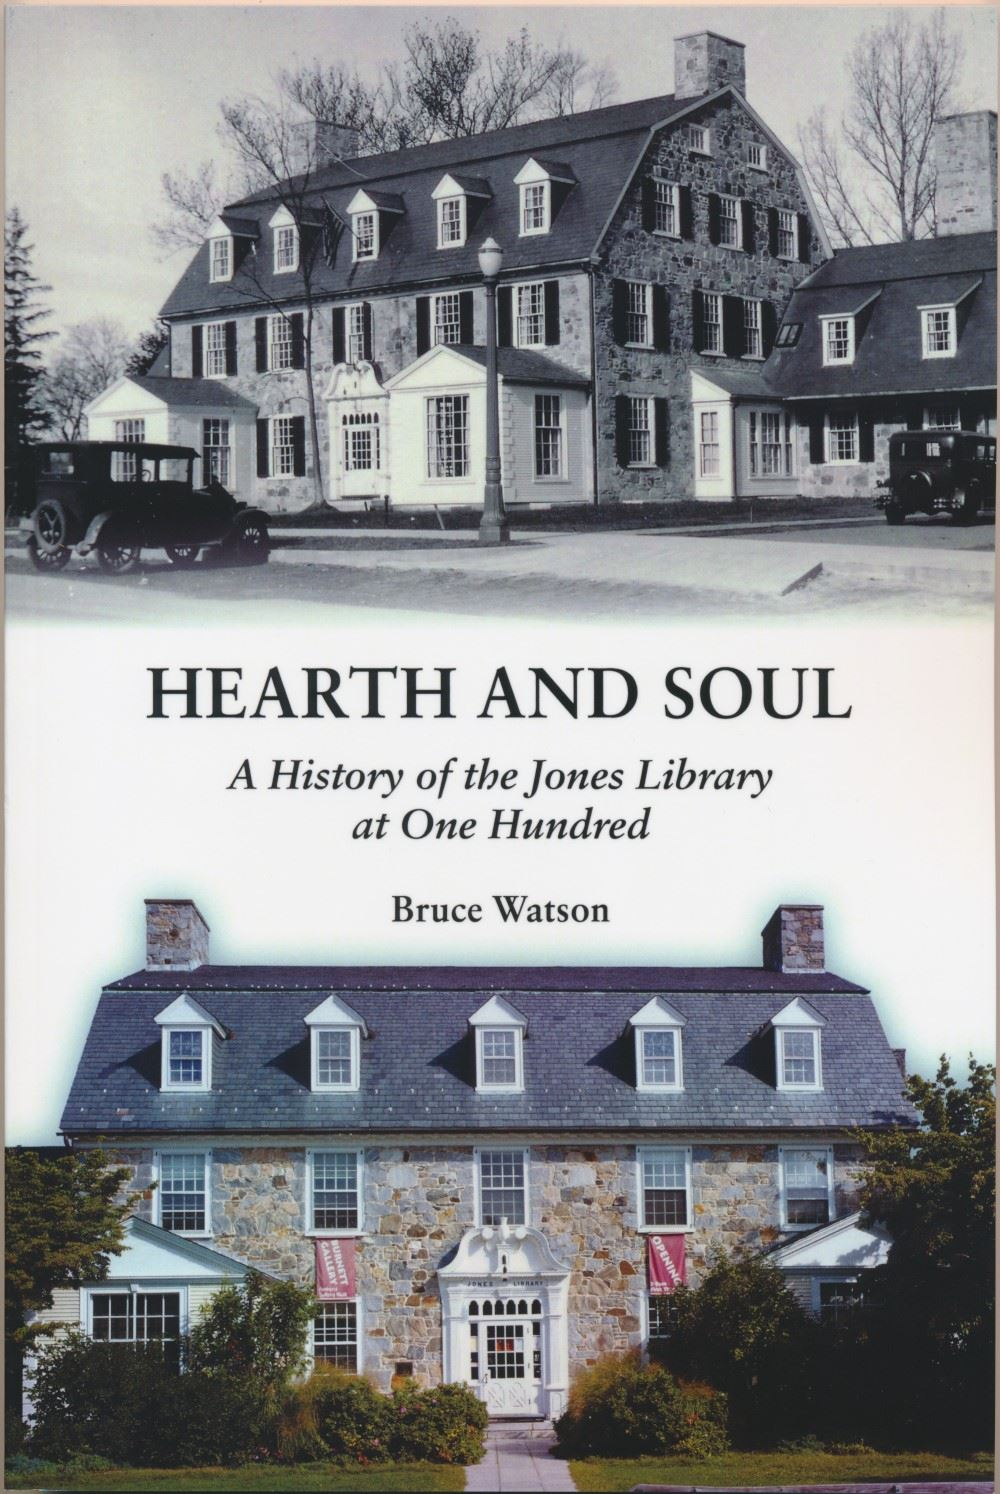 Hearth and Soul - A History of the Jones Library at 100